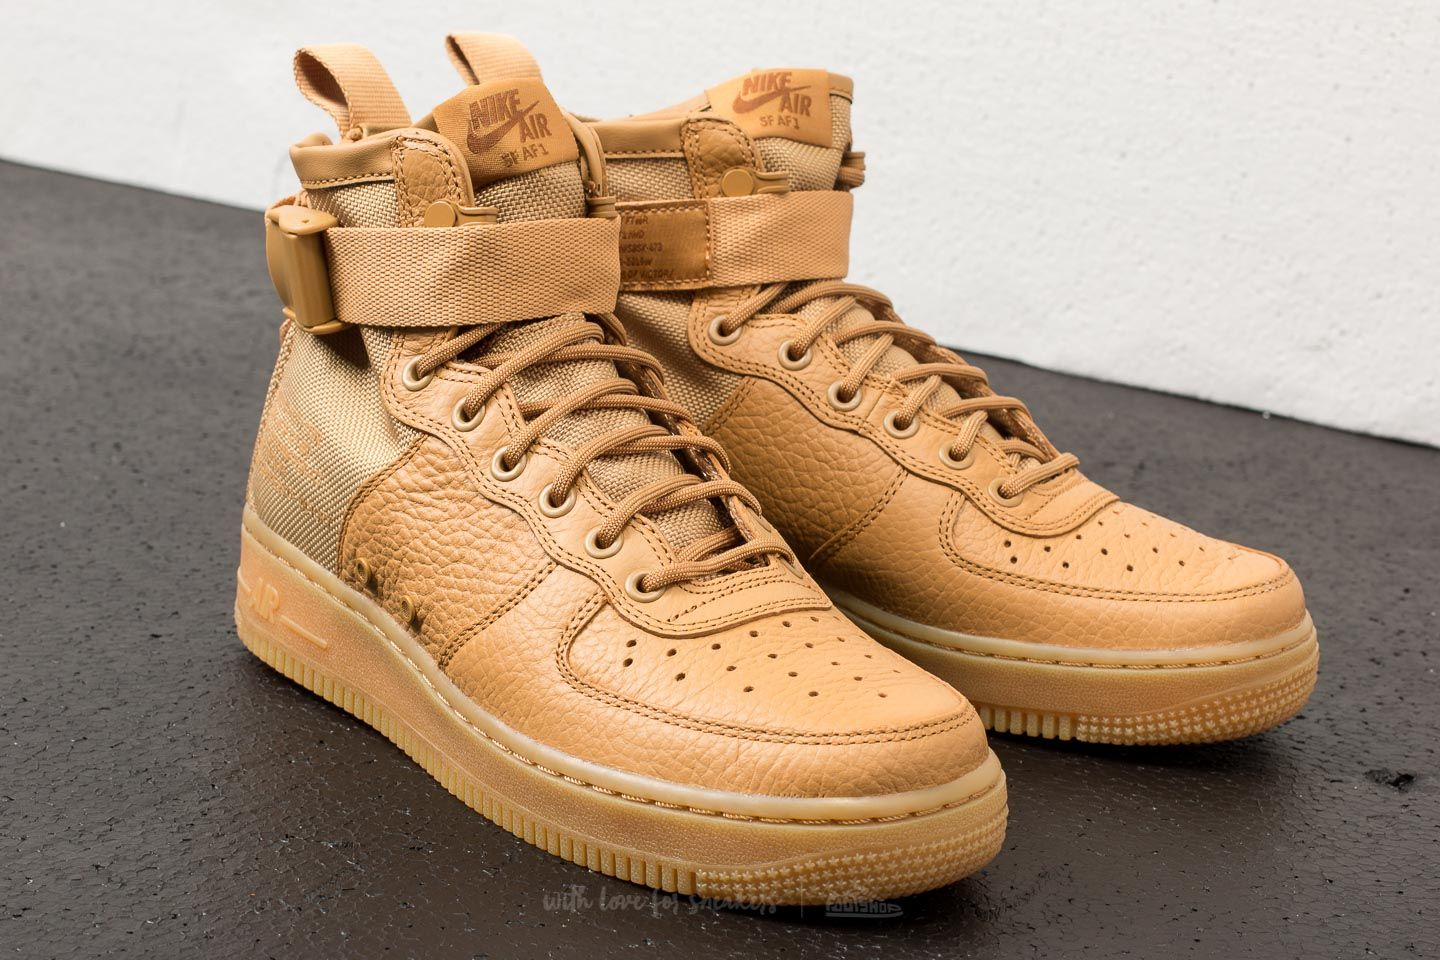 nike air force 1 mid gold